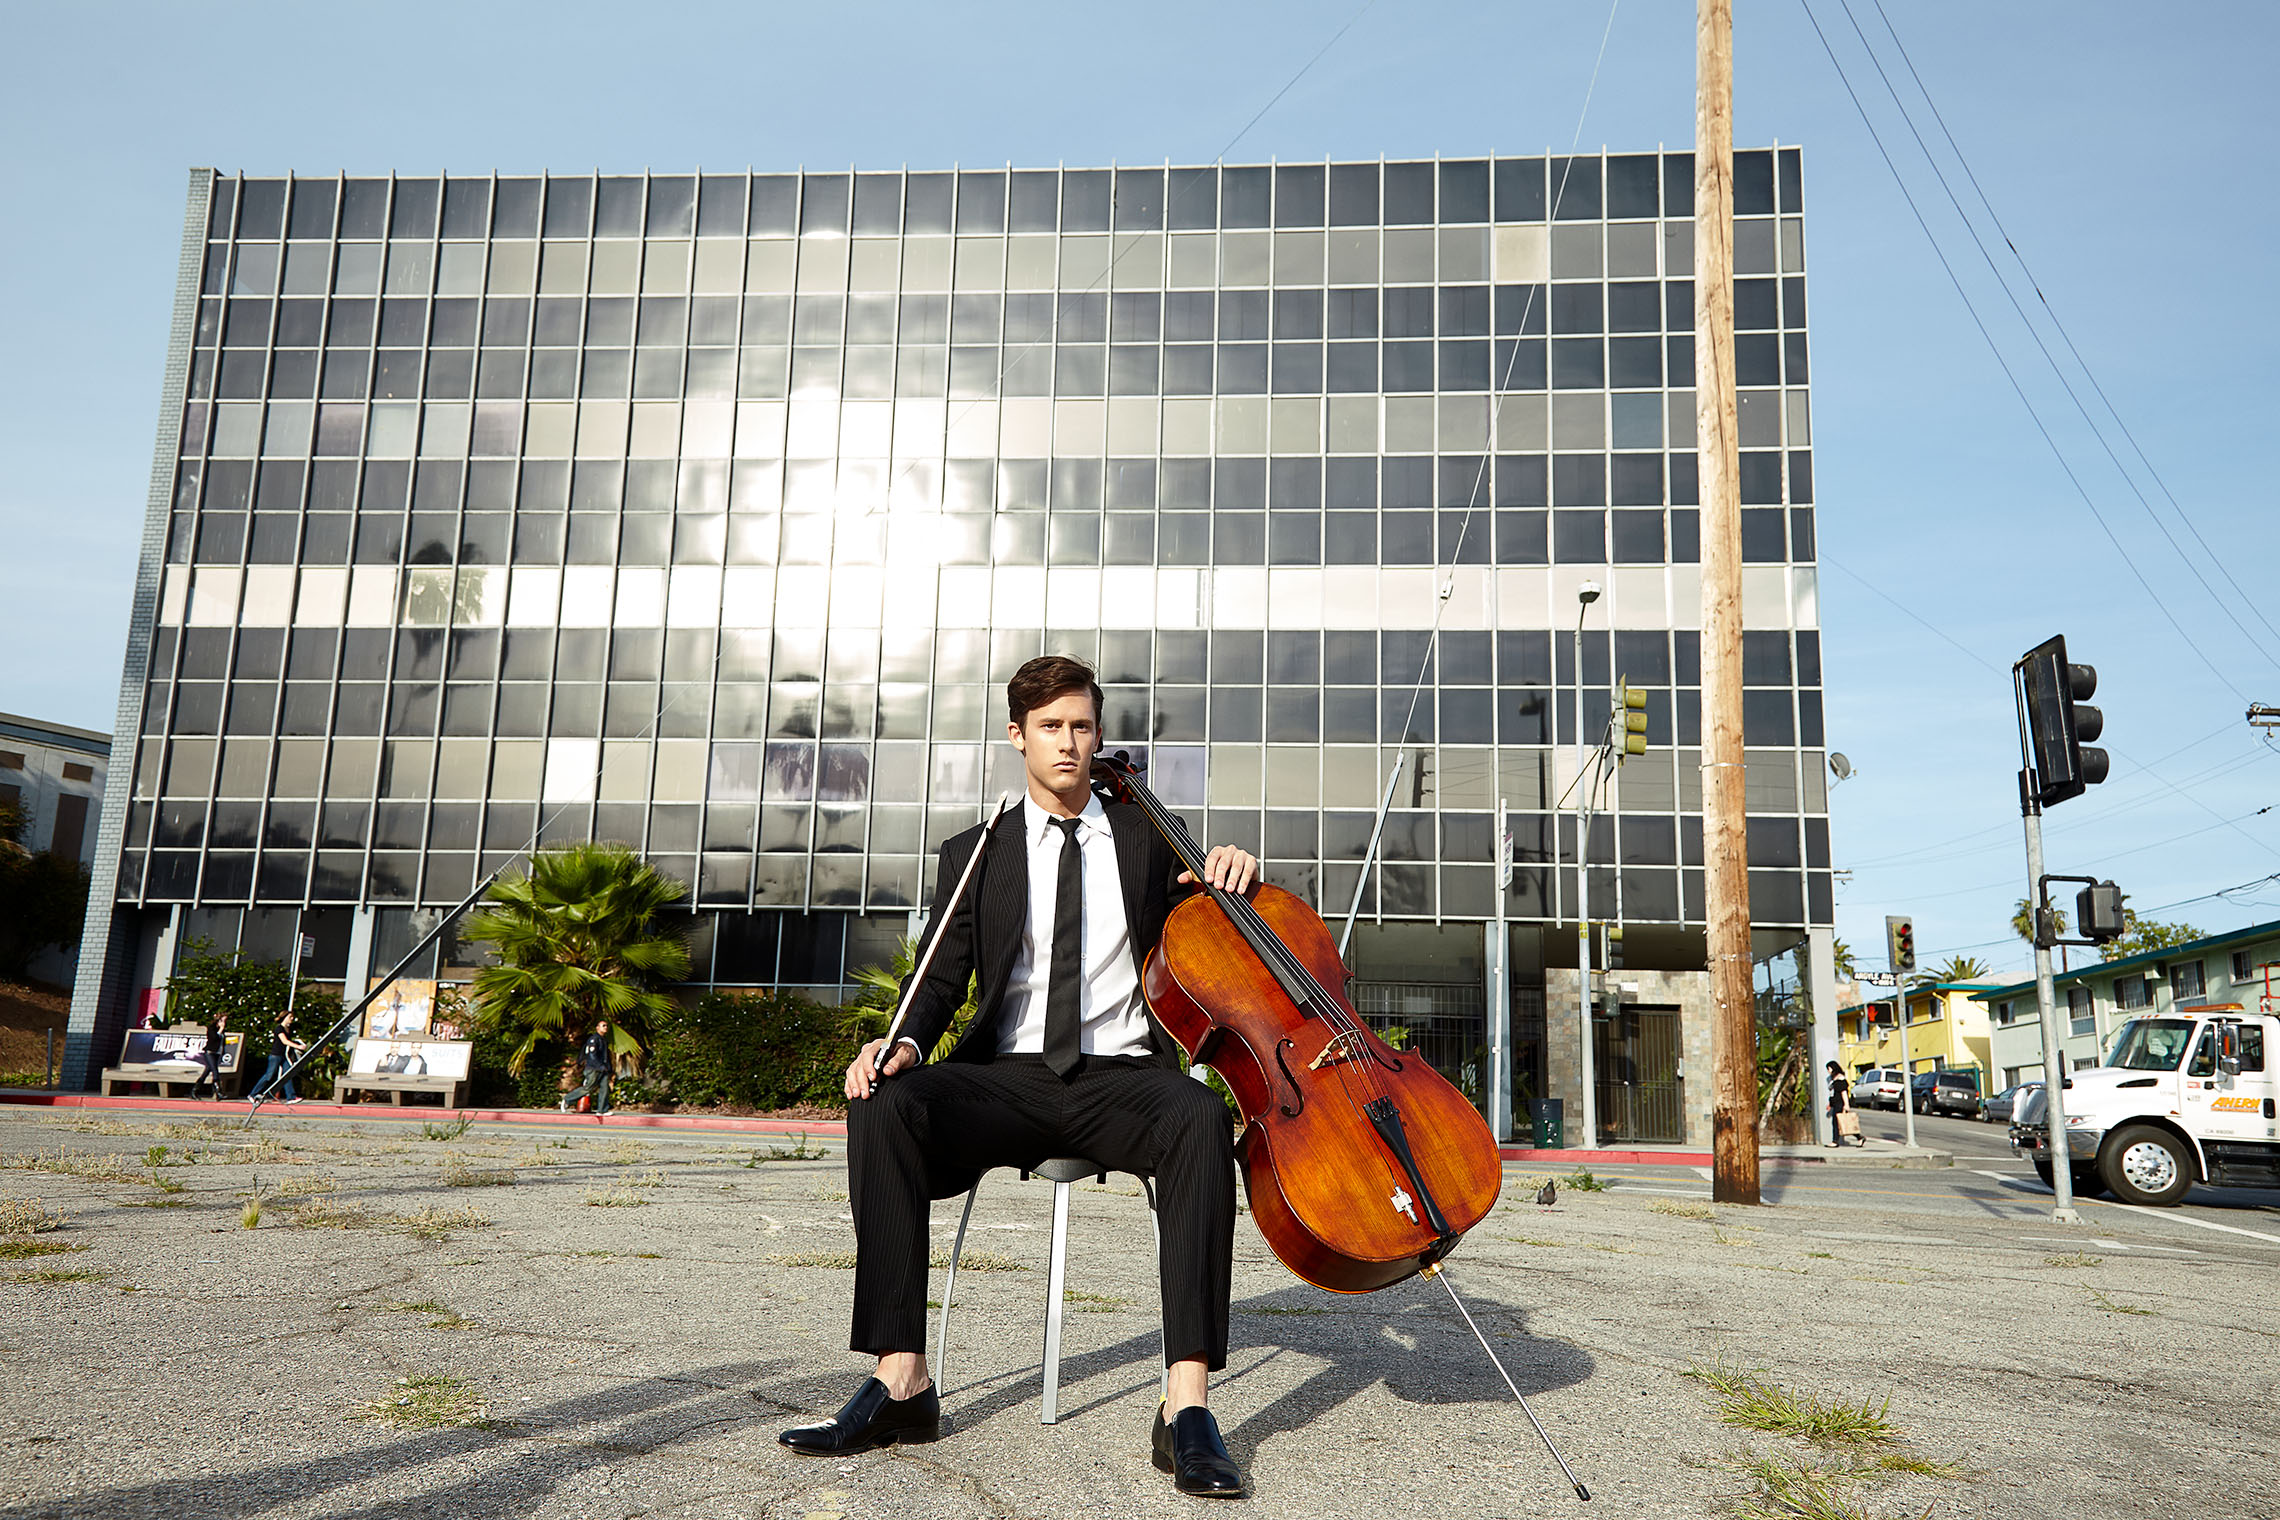 man with violoncello playing on Hollywood square in portrait photograph